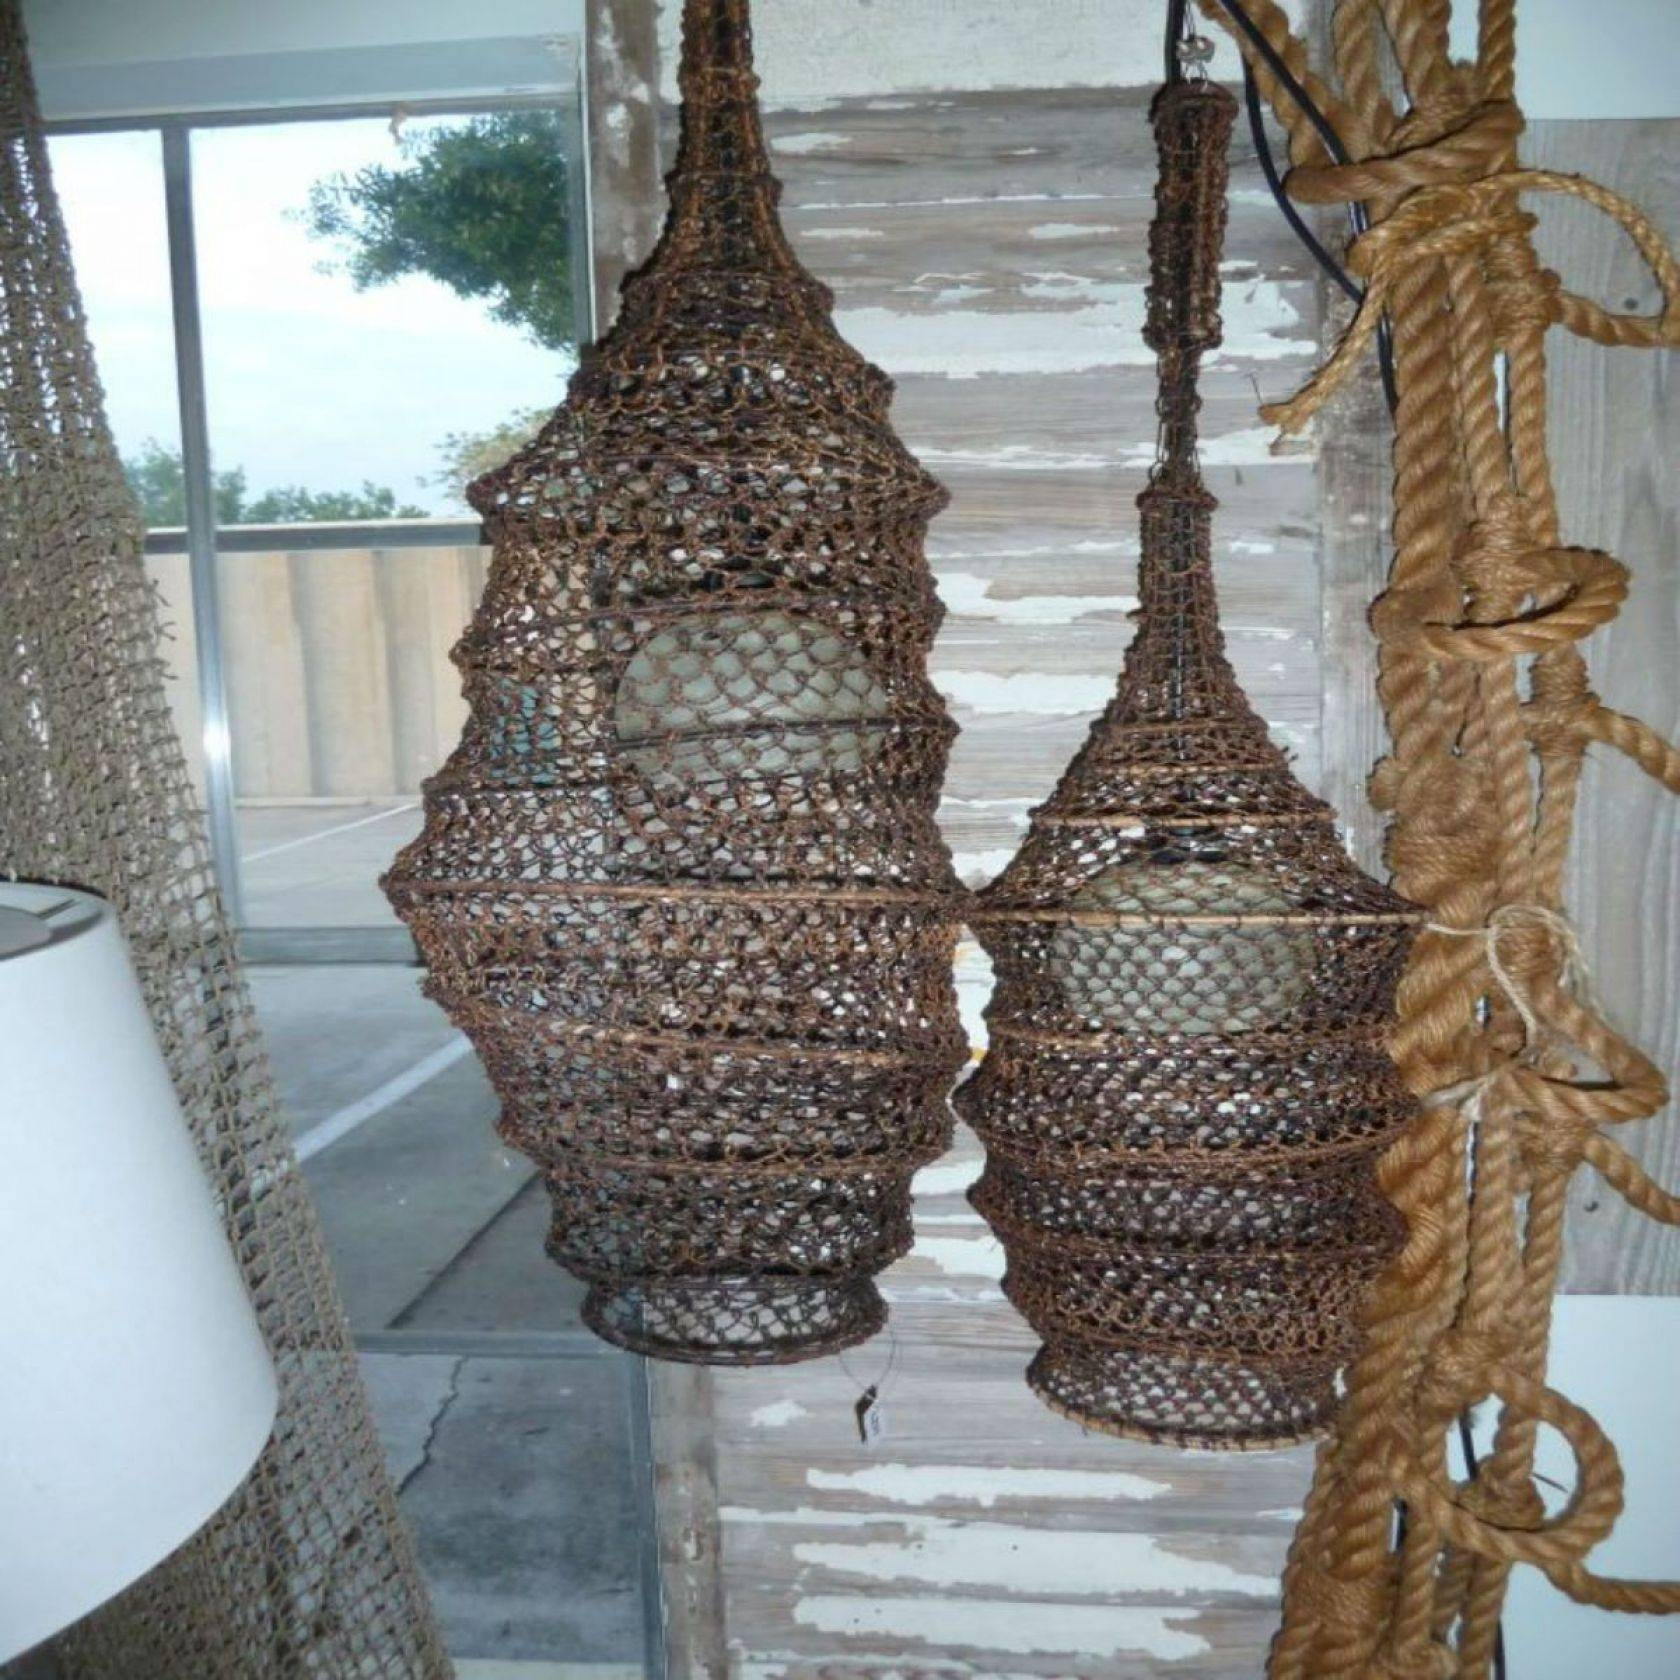 Coastal Chandeliers: Iron, Rope, Driftwood, Sea Glass - Nautical pertaining to Pendant Fishing Lights (Image 3 of 15)